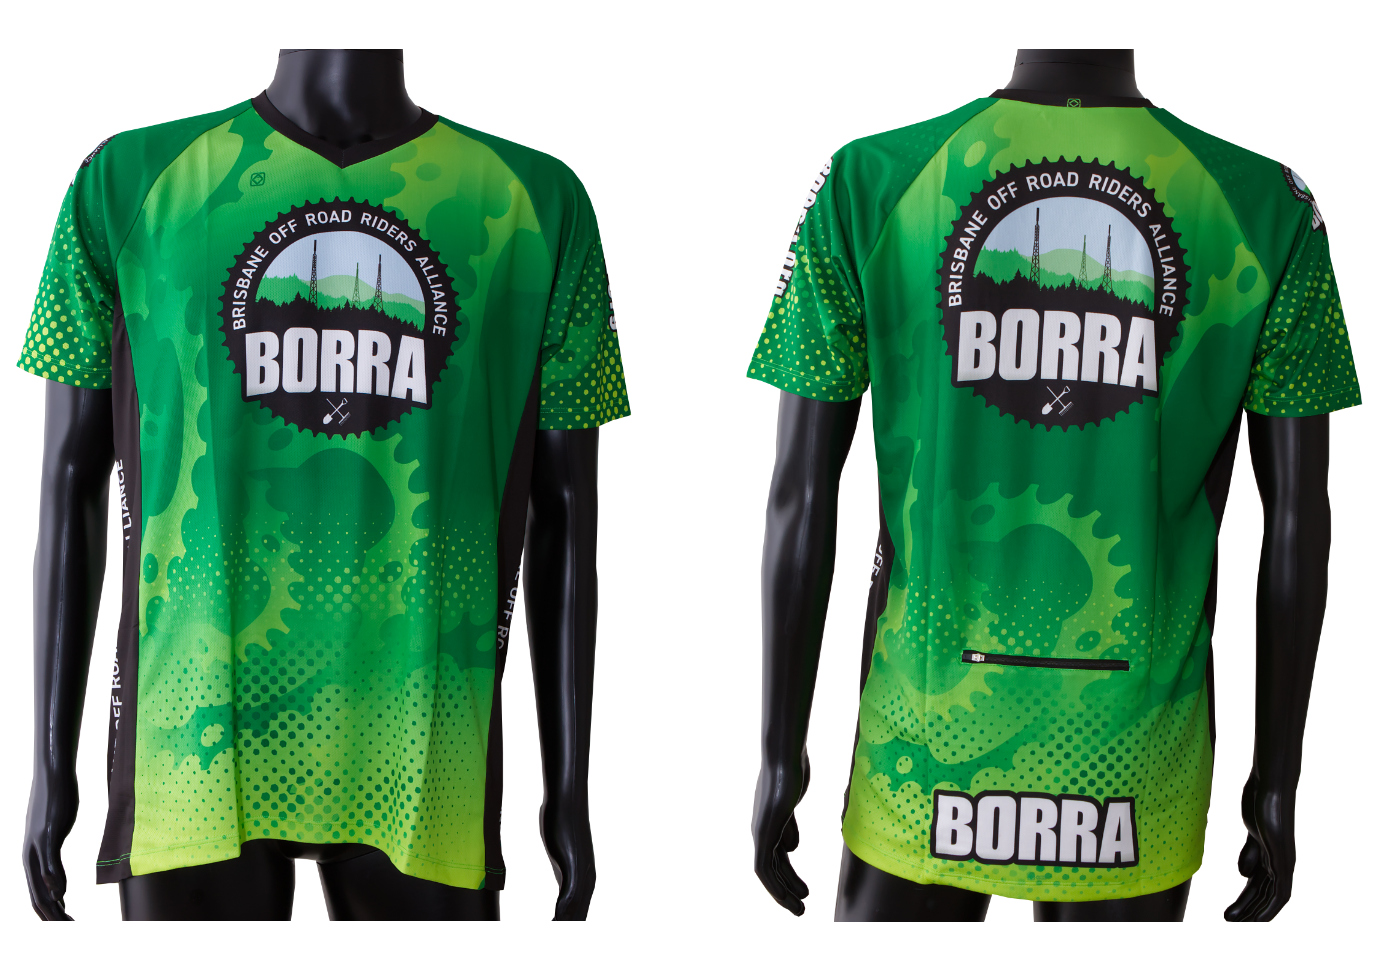 BORRA trail shirt